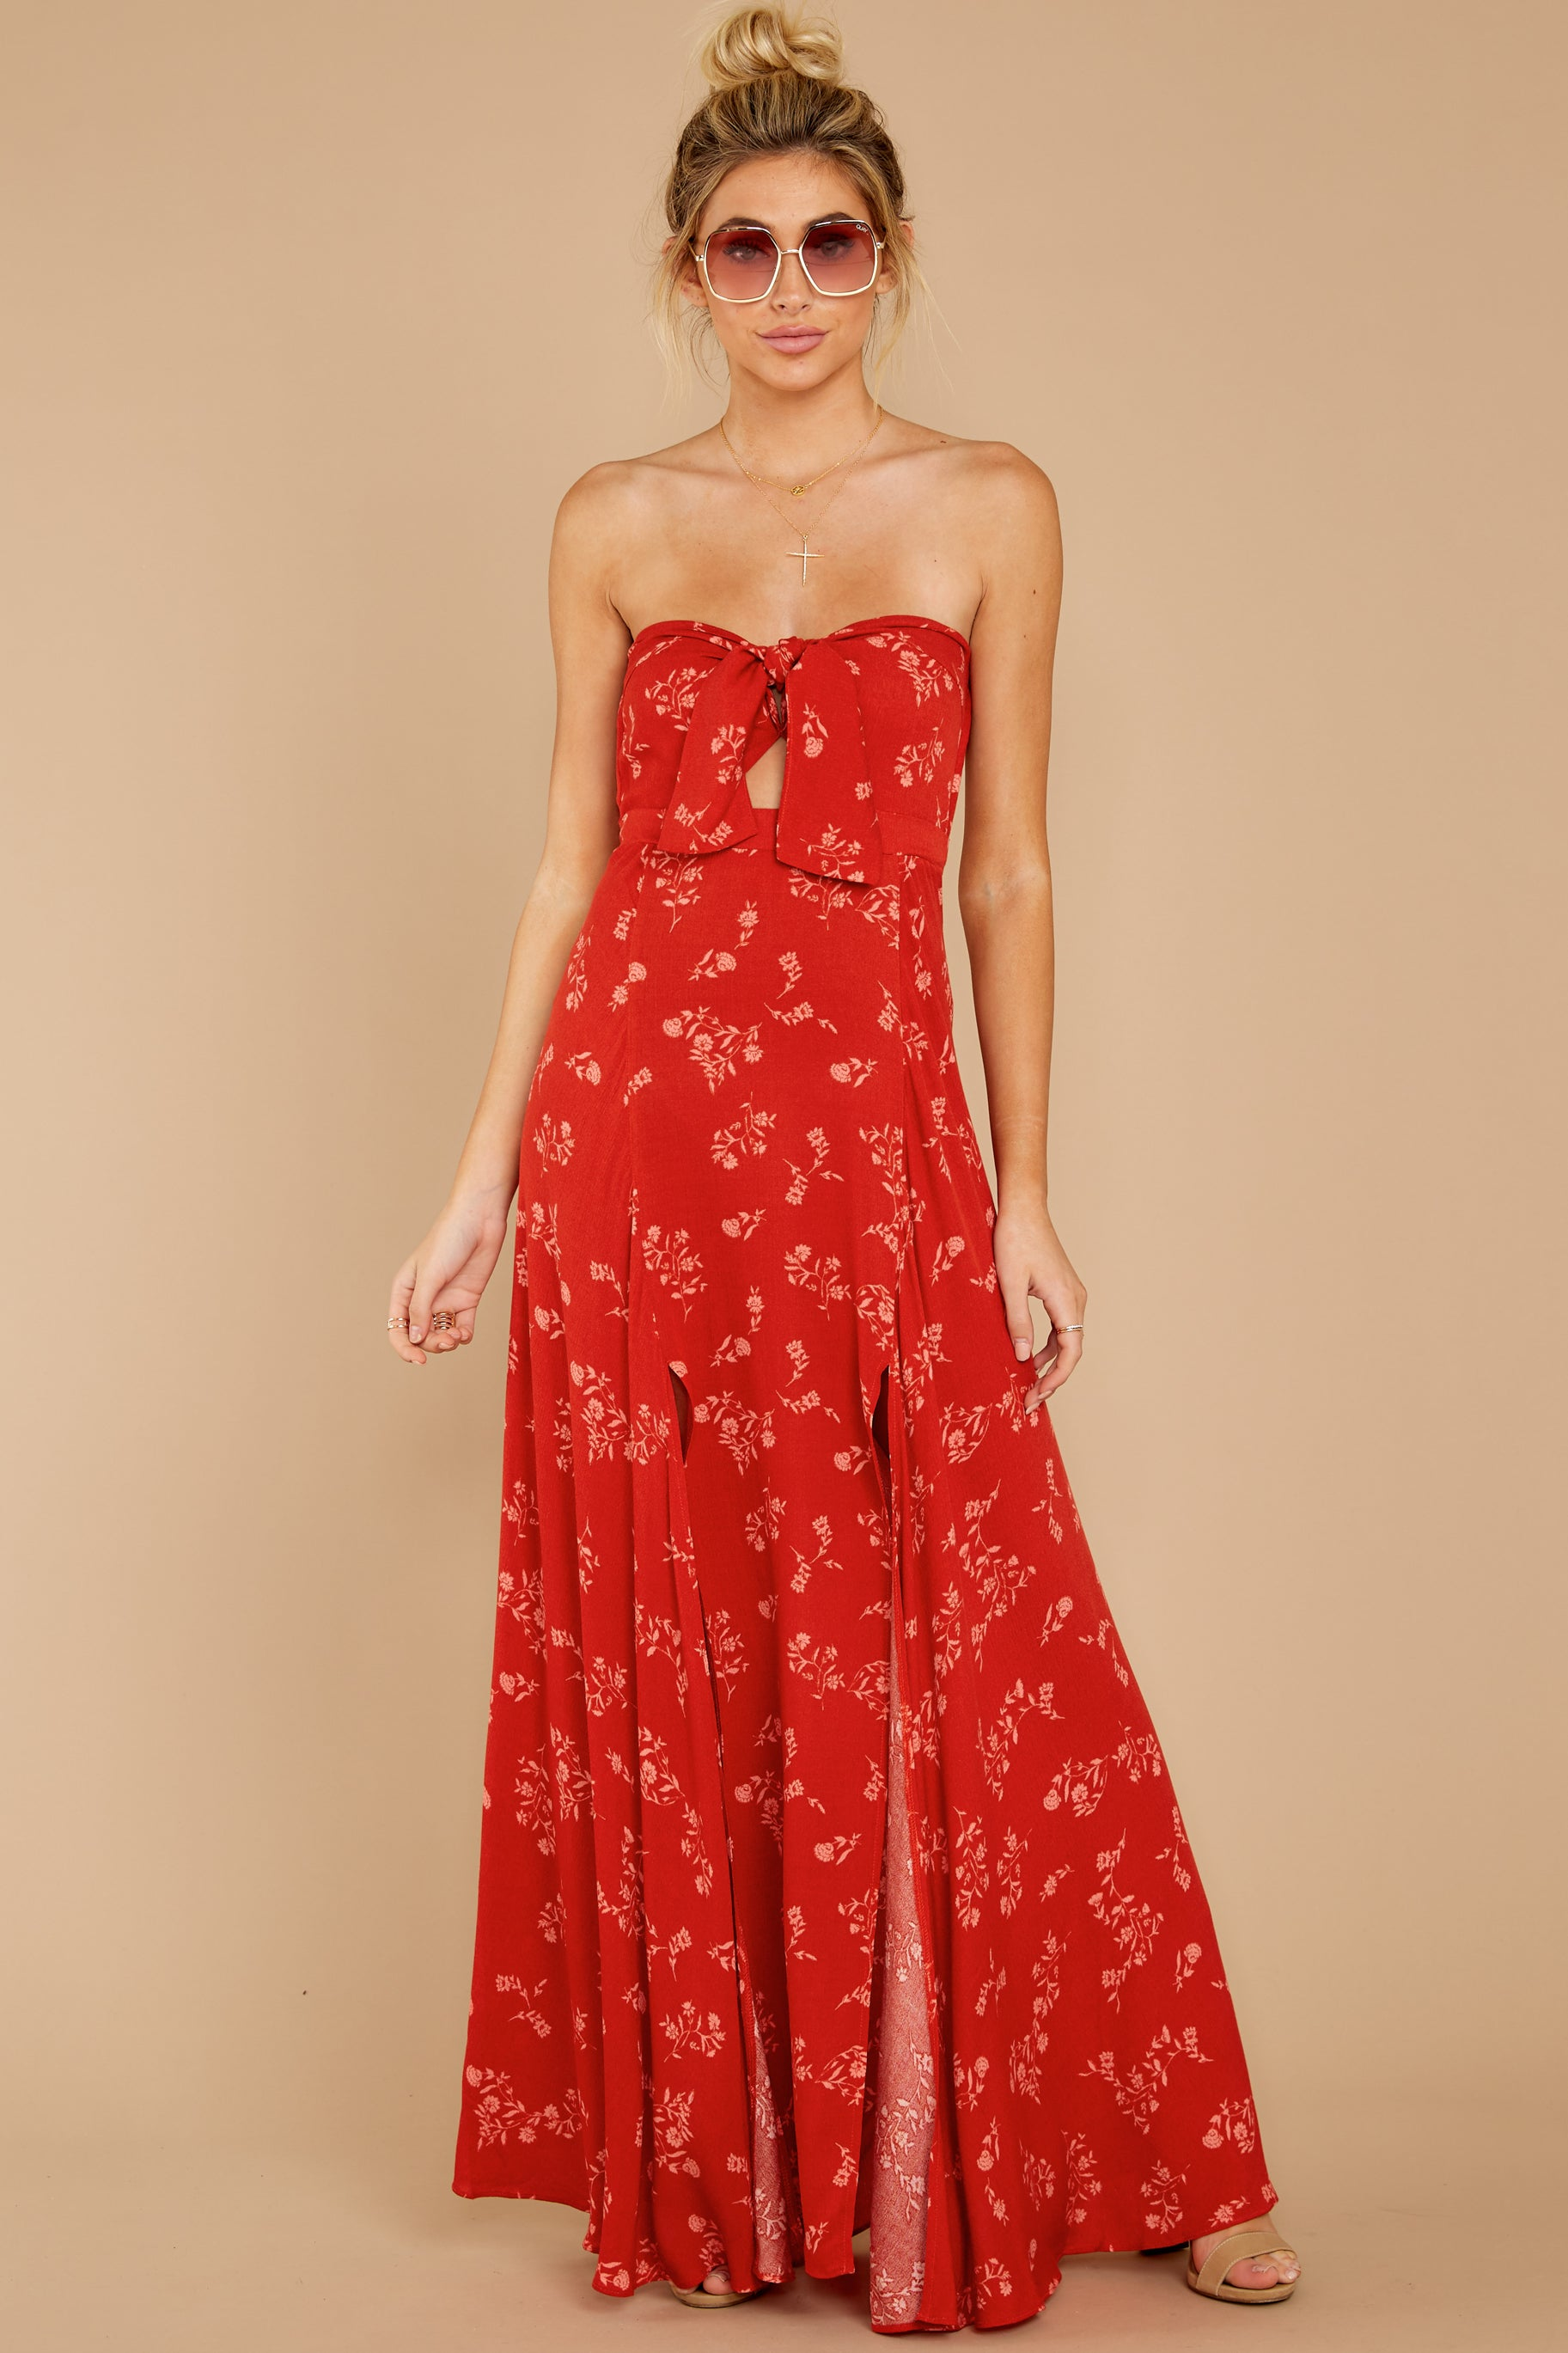 4 Forget Your Watch Rust Floral Print Maxi Dress at reddressboutique.com